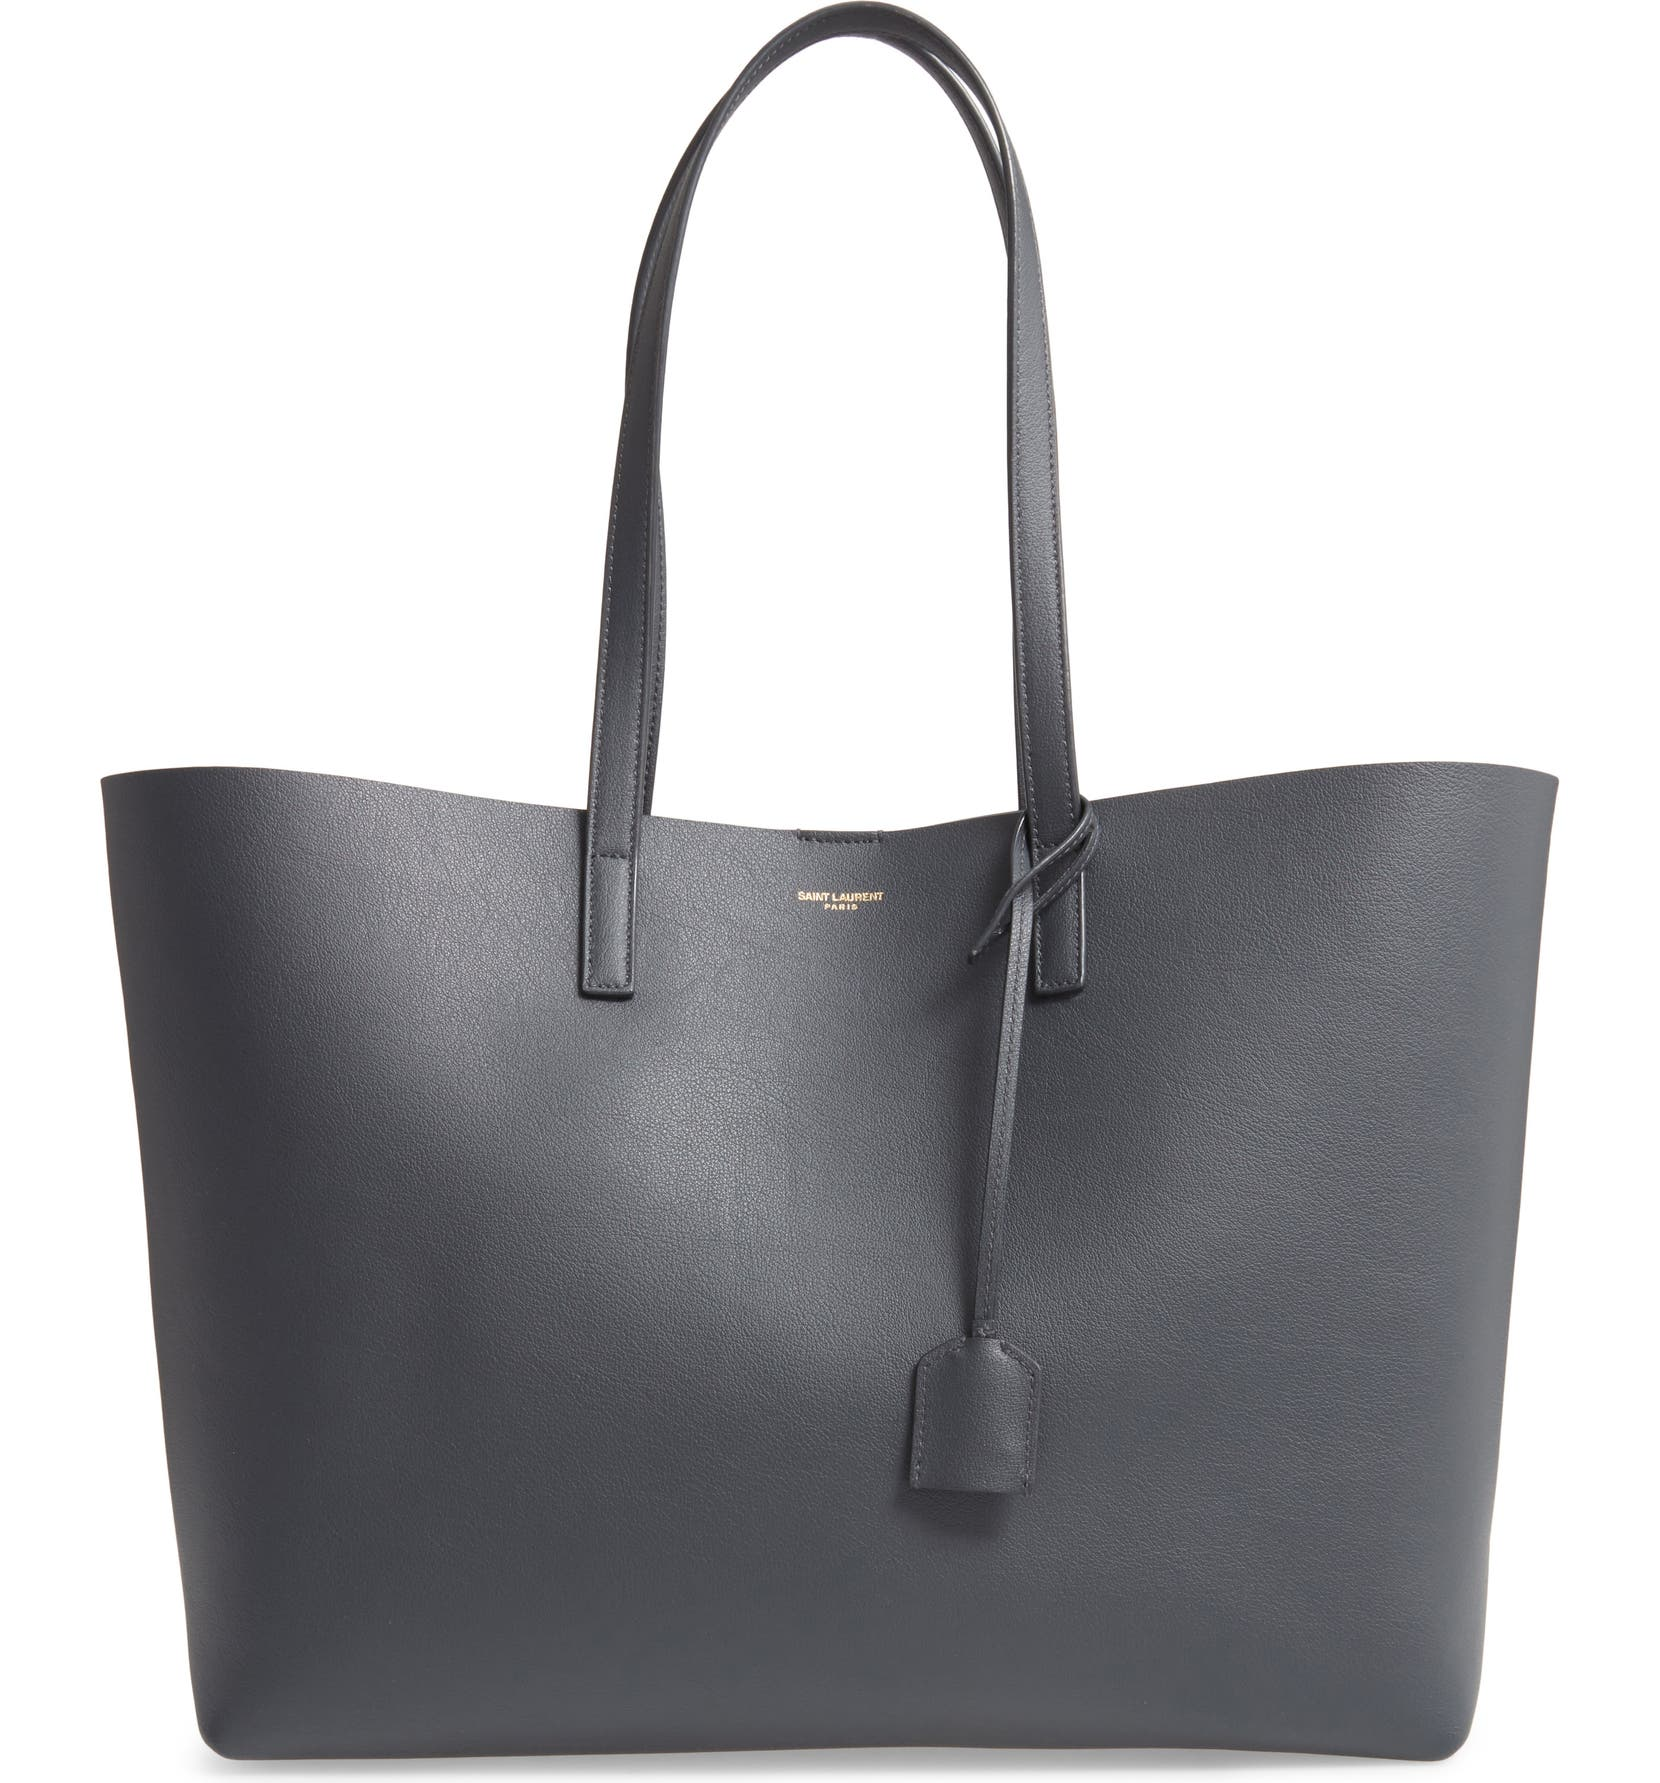 165b98046d5 Saint Laurent 'Shopping' Leather Tote | Nordstrom